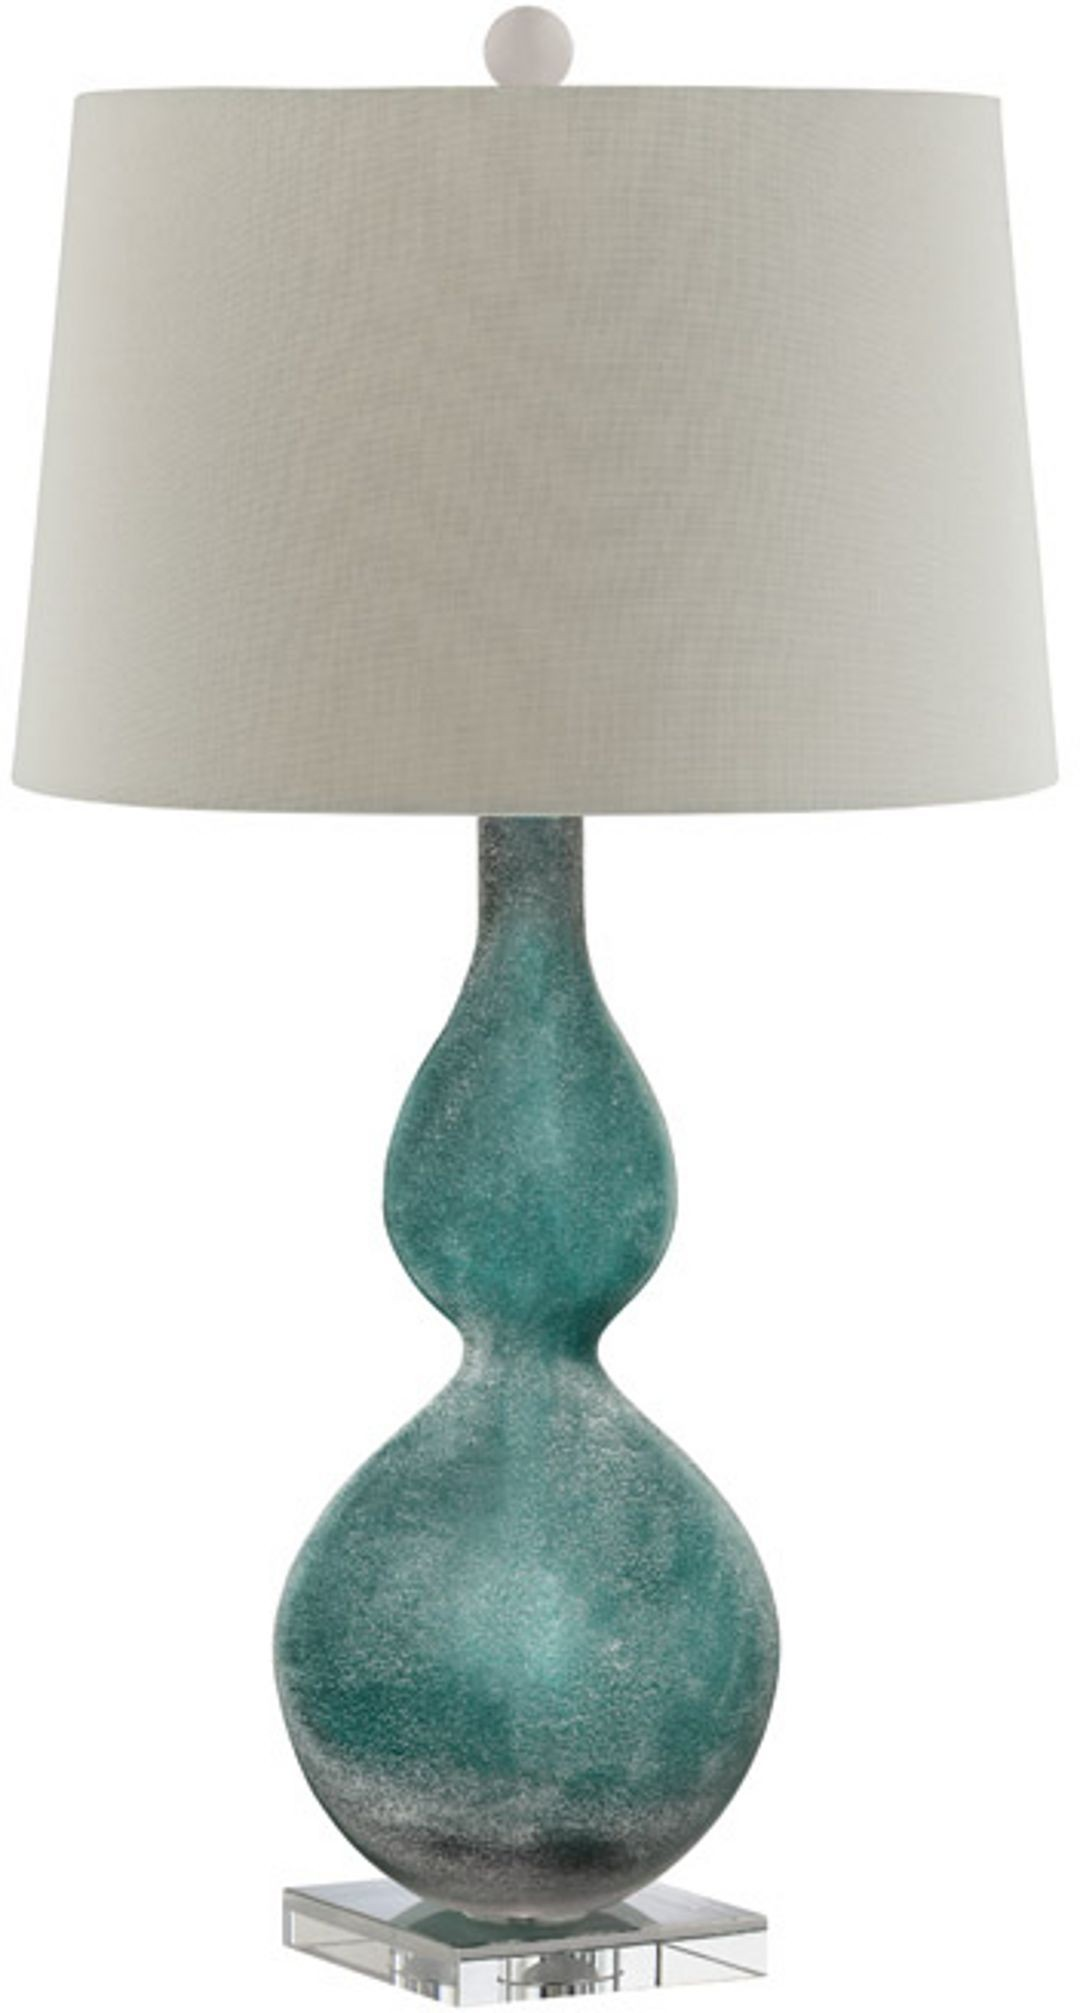 atria green glass table lamp from steinworld 99693 coleman. Black Bedroom Furniture Sets. Home Design Ideas